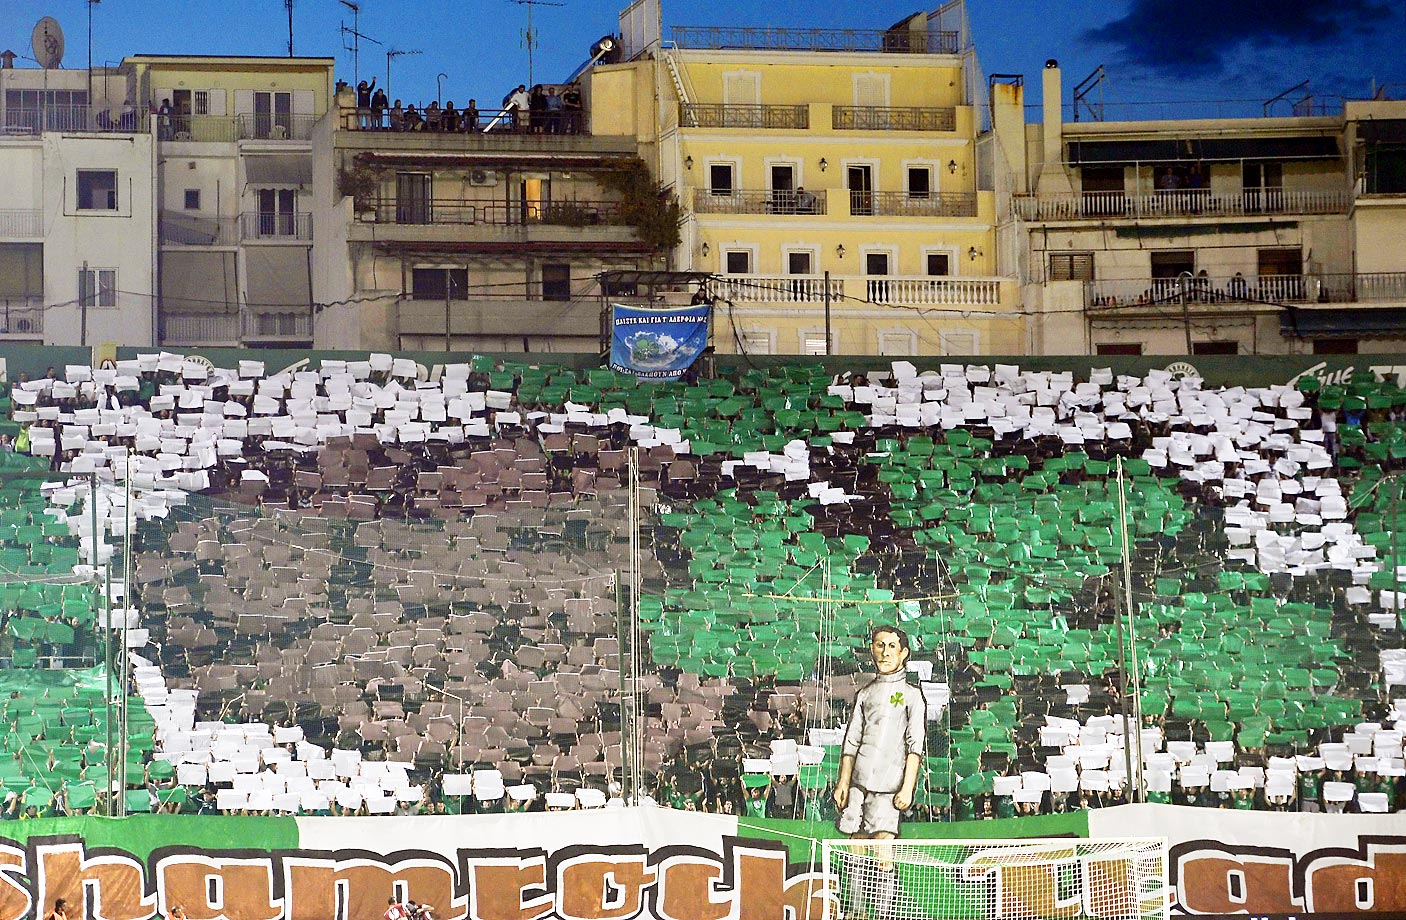 Panathinaikos Athens fans display a banner during the UEFA Europa League match against Dynamo Moscow.